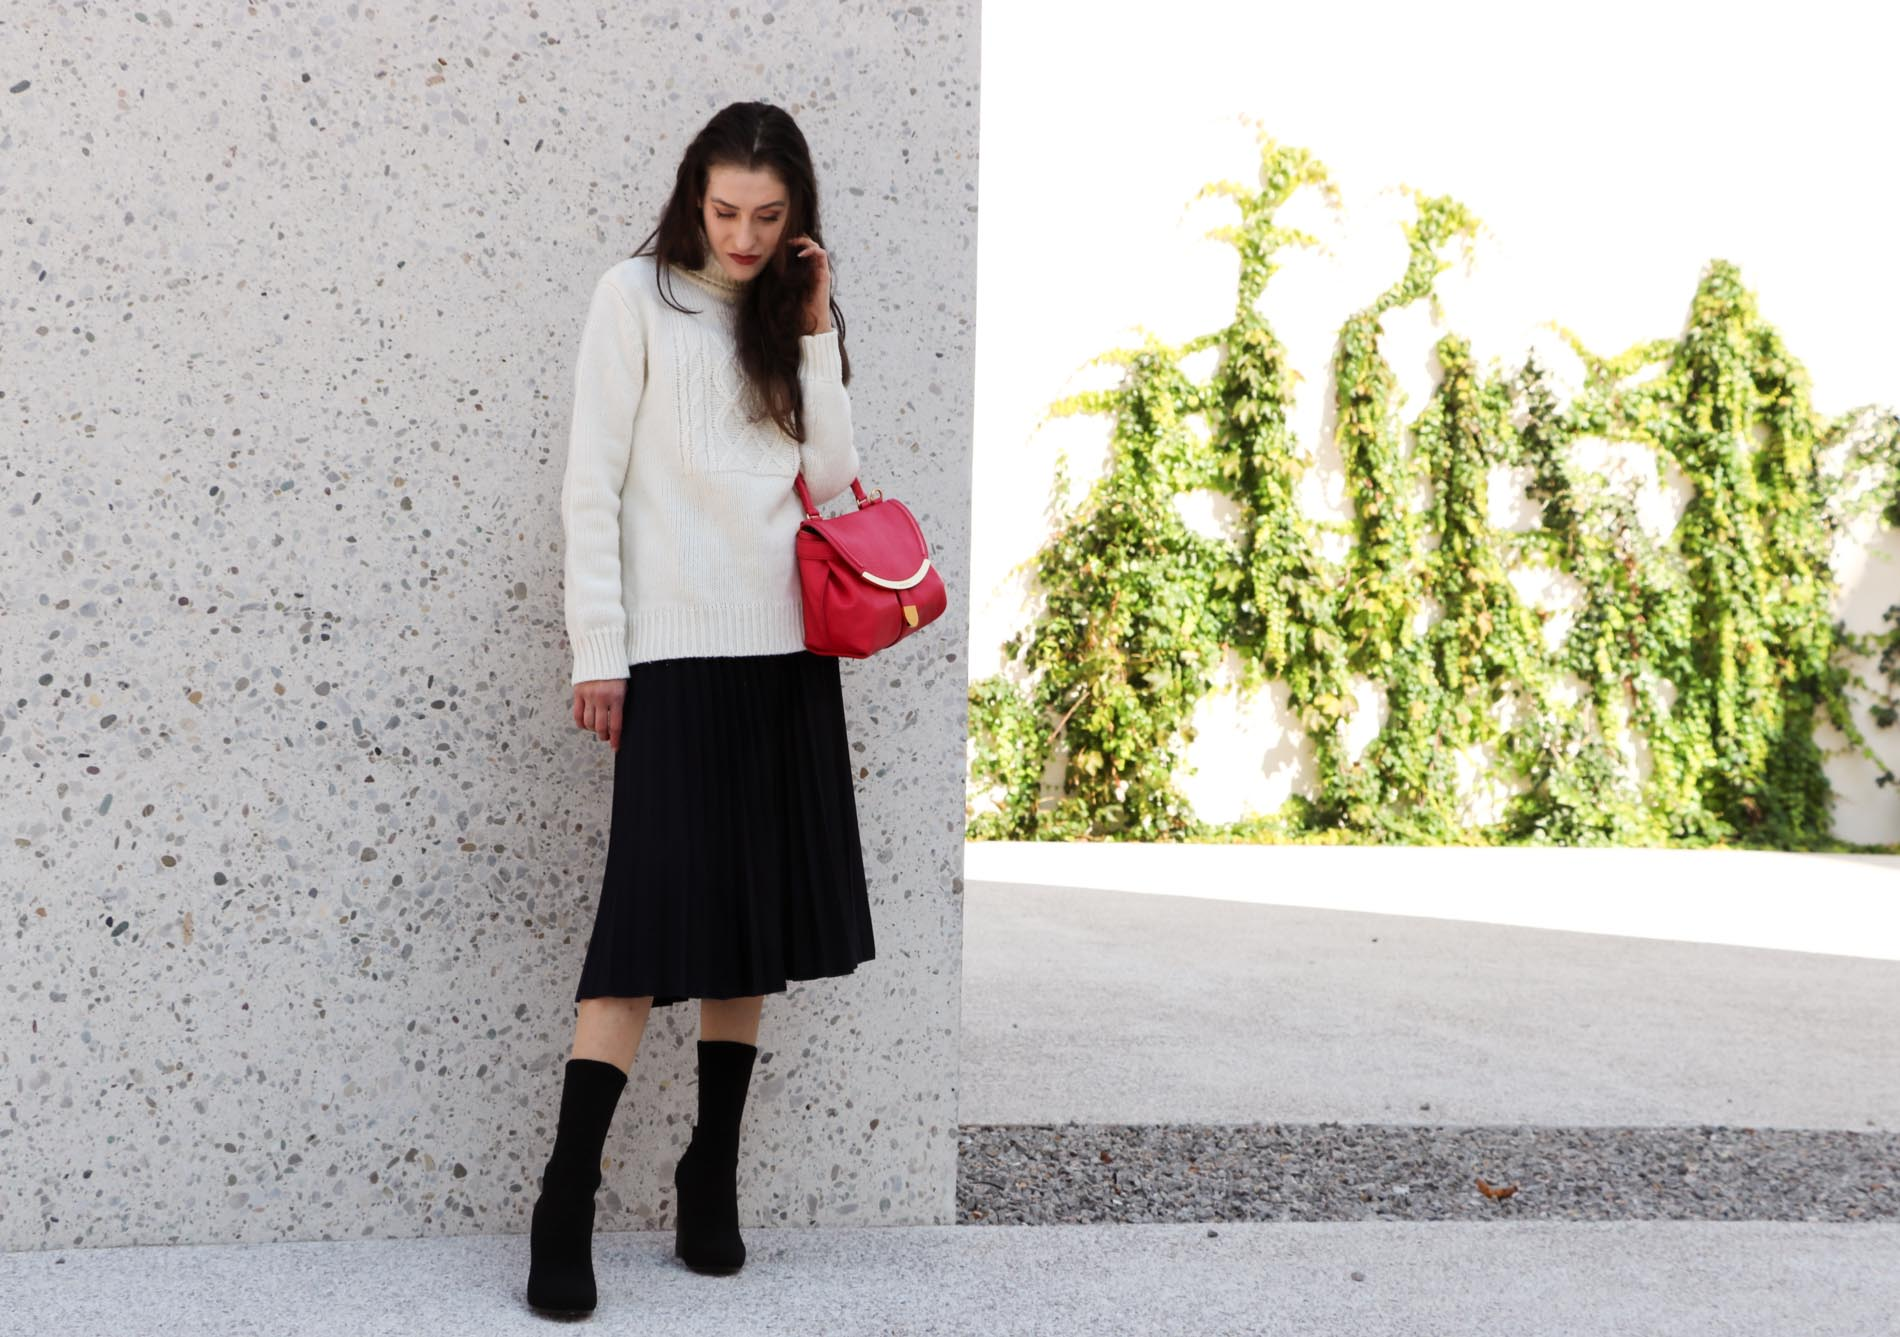 Fashion Blogger Veronika Lipar of Brunette from Wall Street dressed in white oversize cable knit sweater, black pleated midi skirt, pink top handle bag from See by Chloe and black sock boots from Elena Iachi